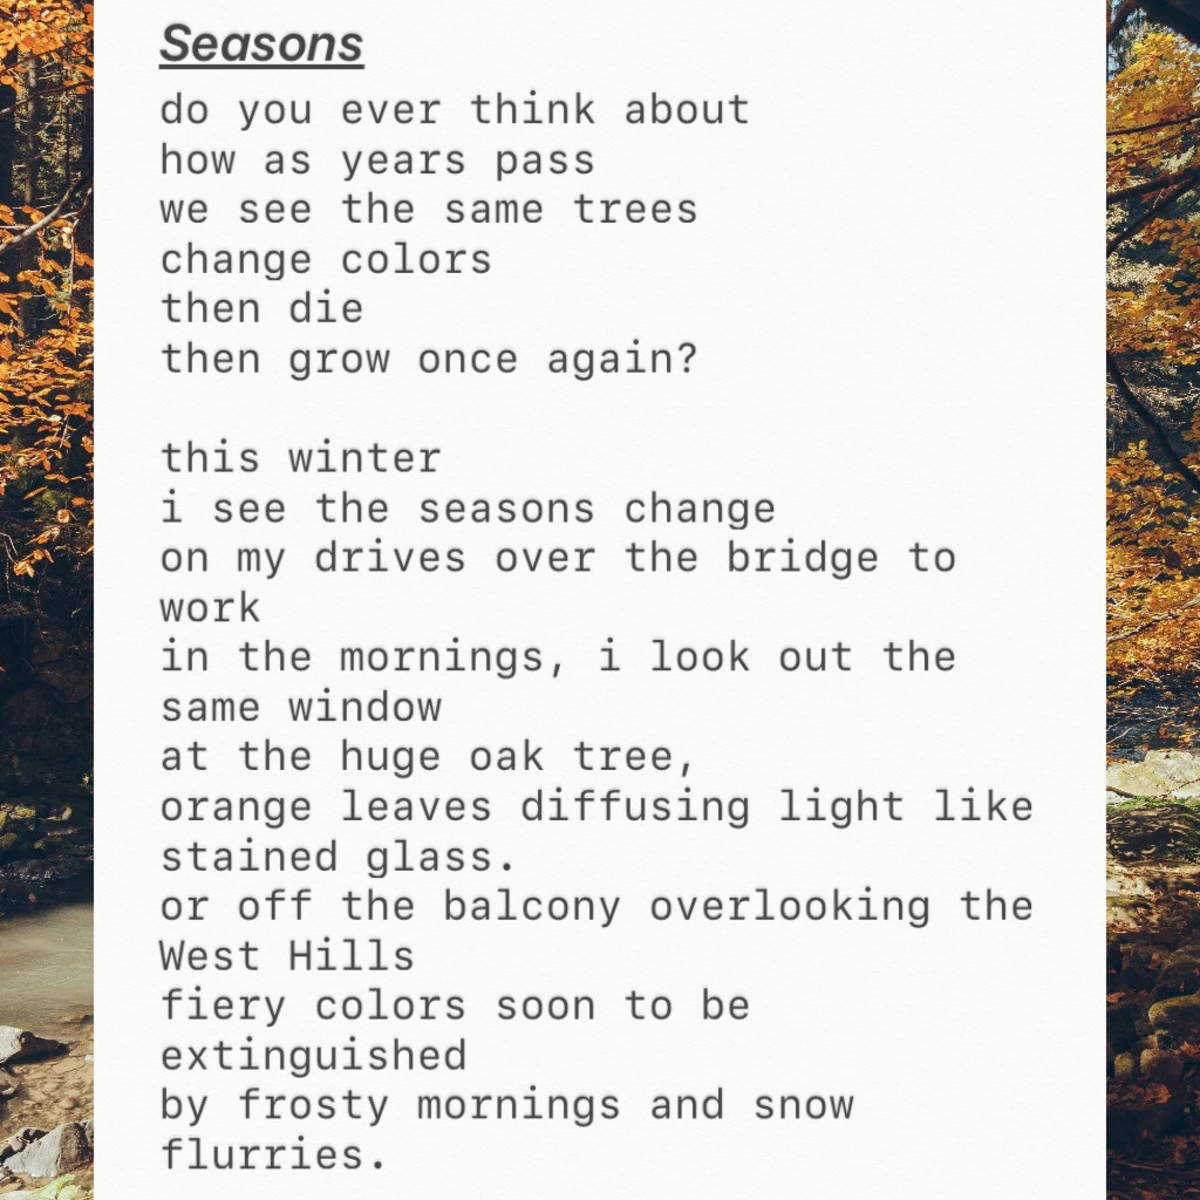 A poem about the transitioning seasons, their cyclical nature, and the feeling of seeing death and rebirth.